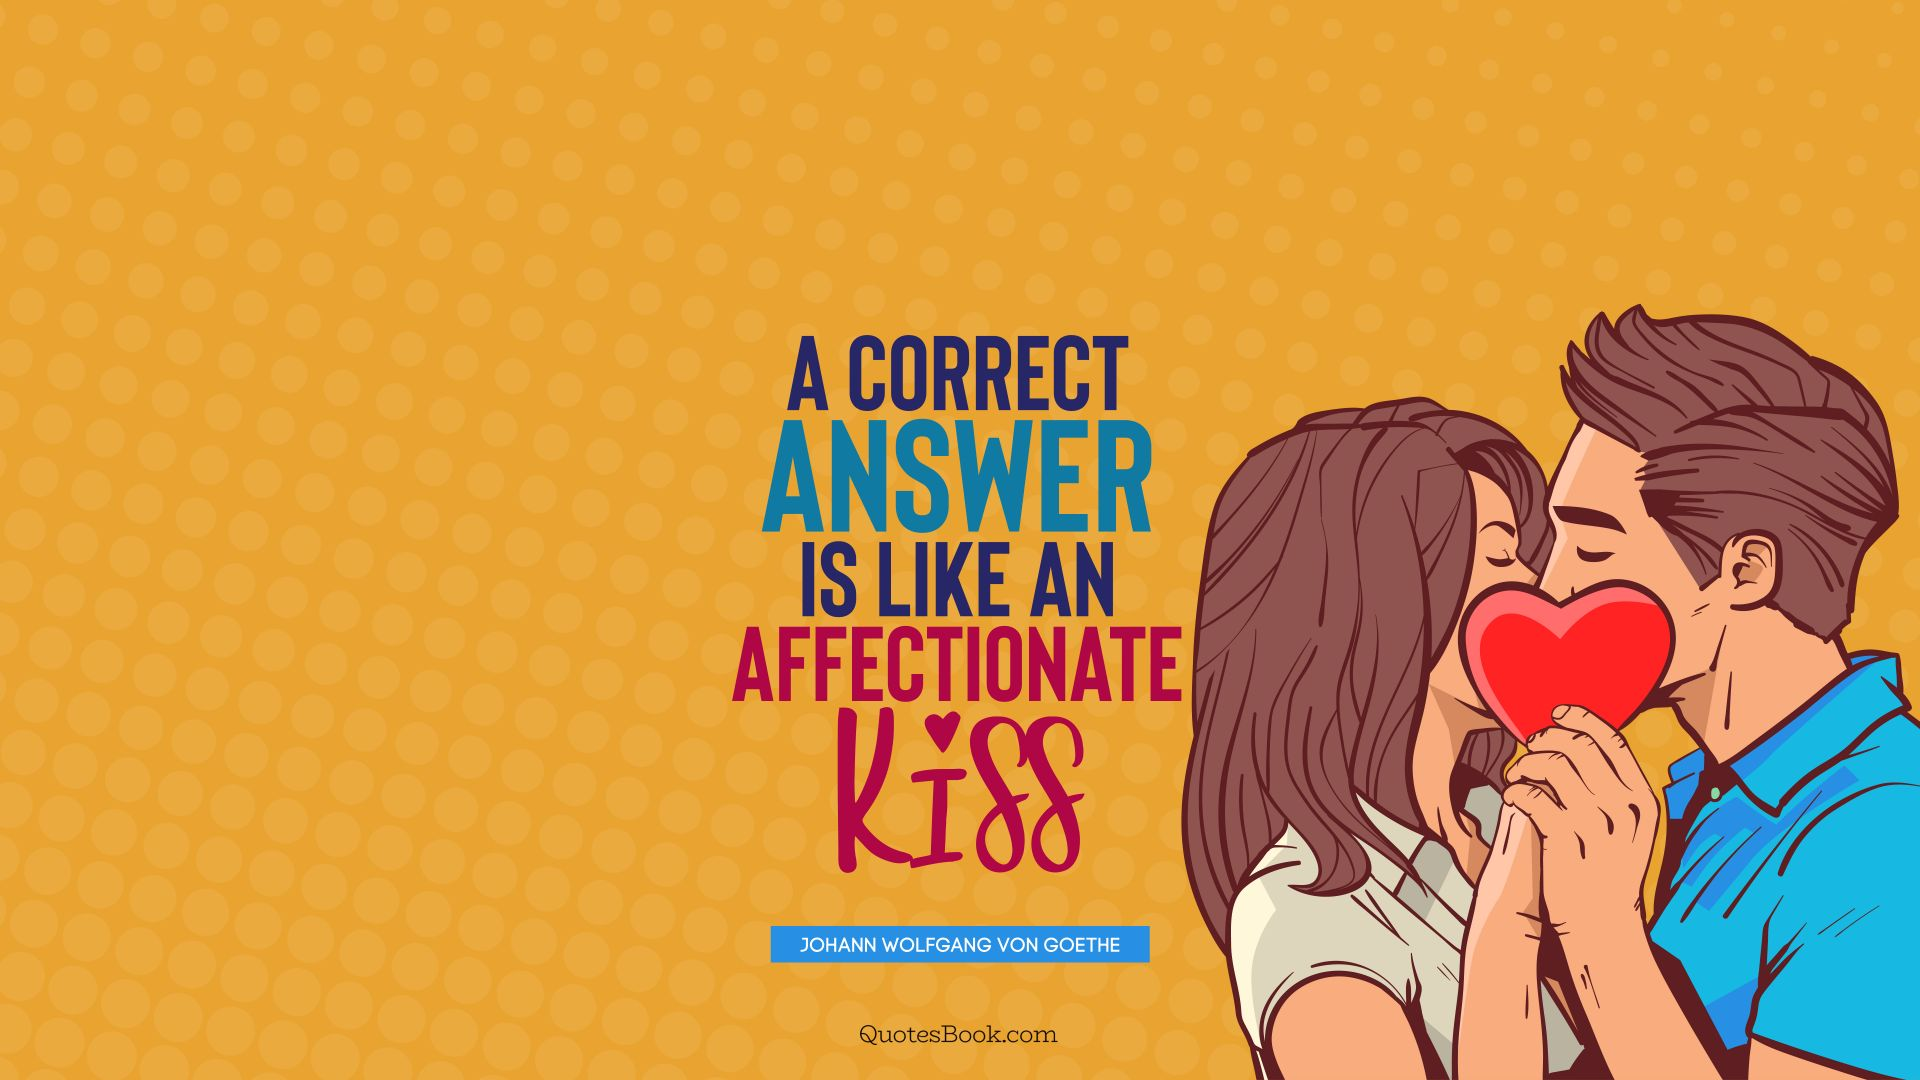 A correct answer is like an affectionate kiss. - Quote by Johann Wolfgang von Goethe